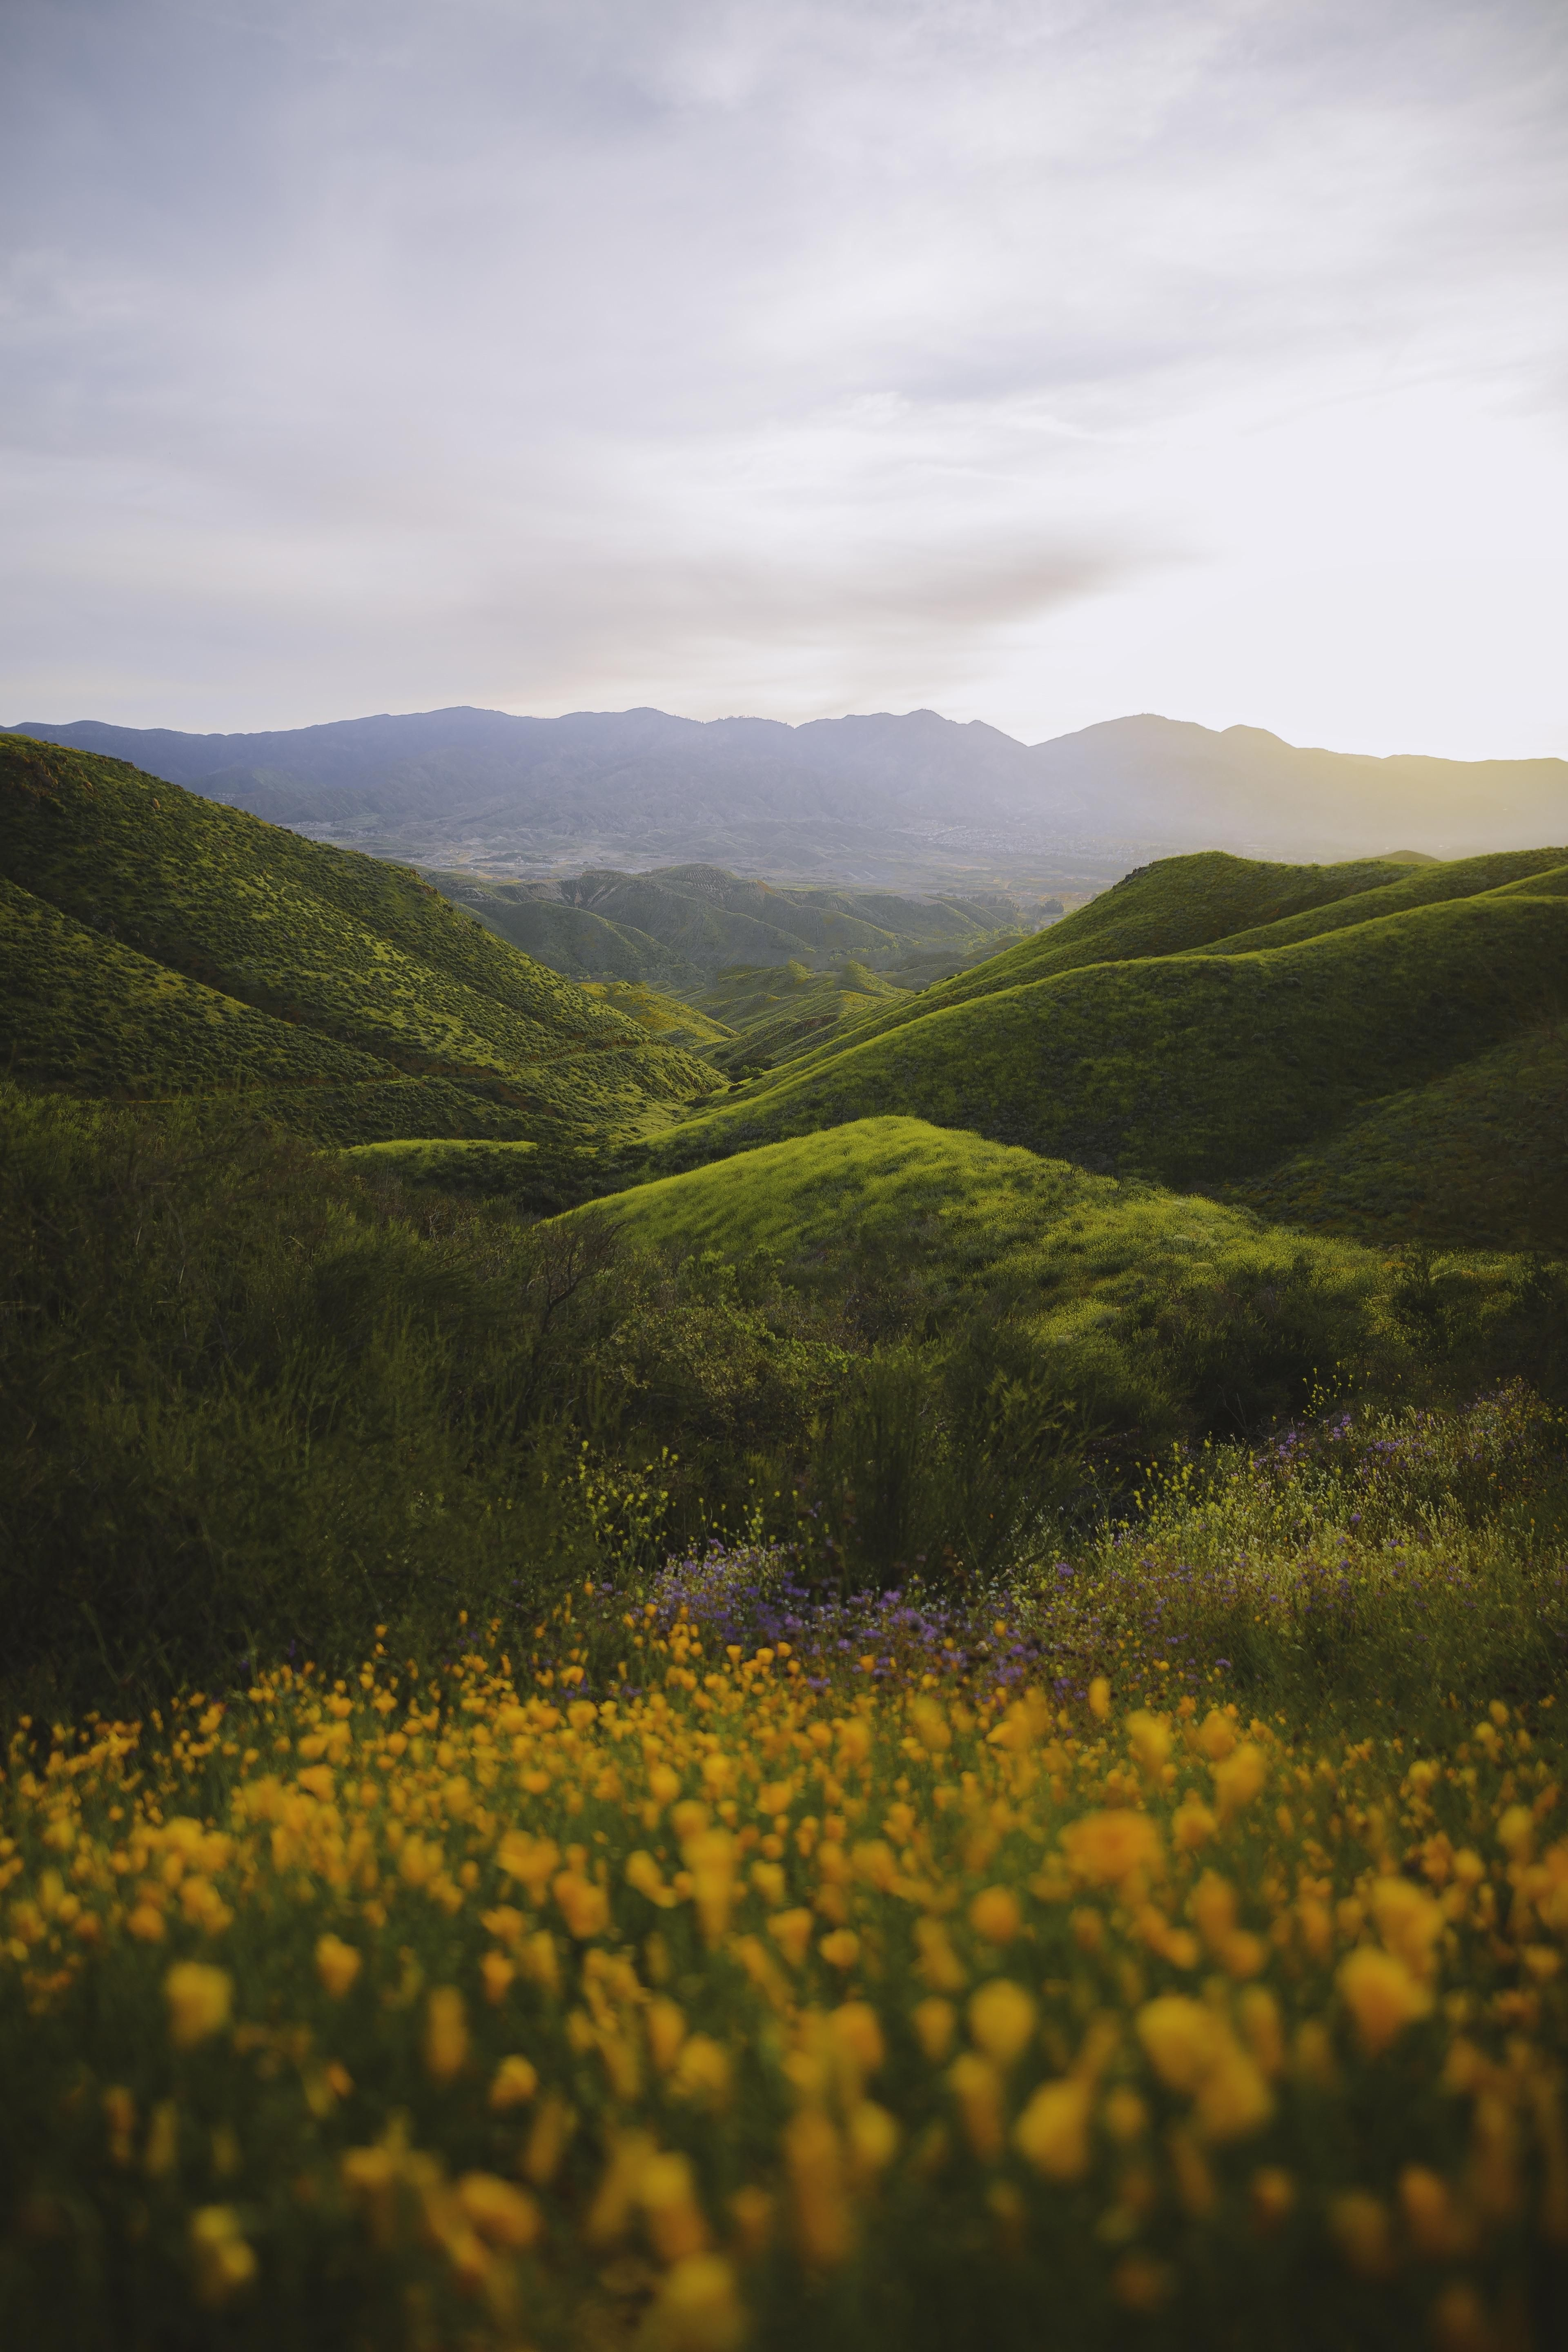 Super Bloom In California 3840x5760 Beautifulnature Naturephotography Photography Earthporn Tr Landscape Photography Nature Photography Nature Aesthetic